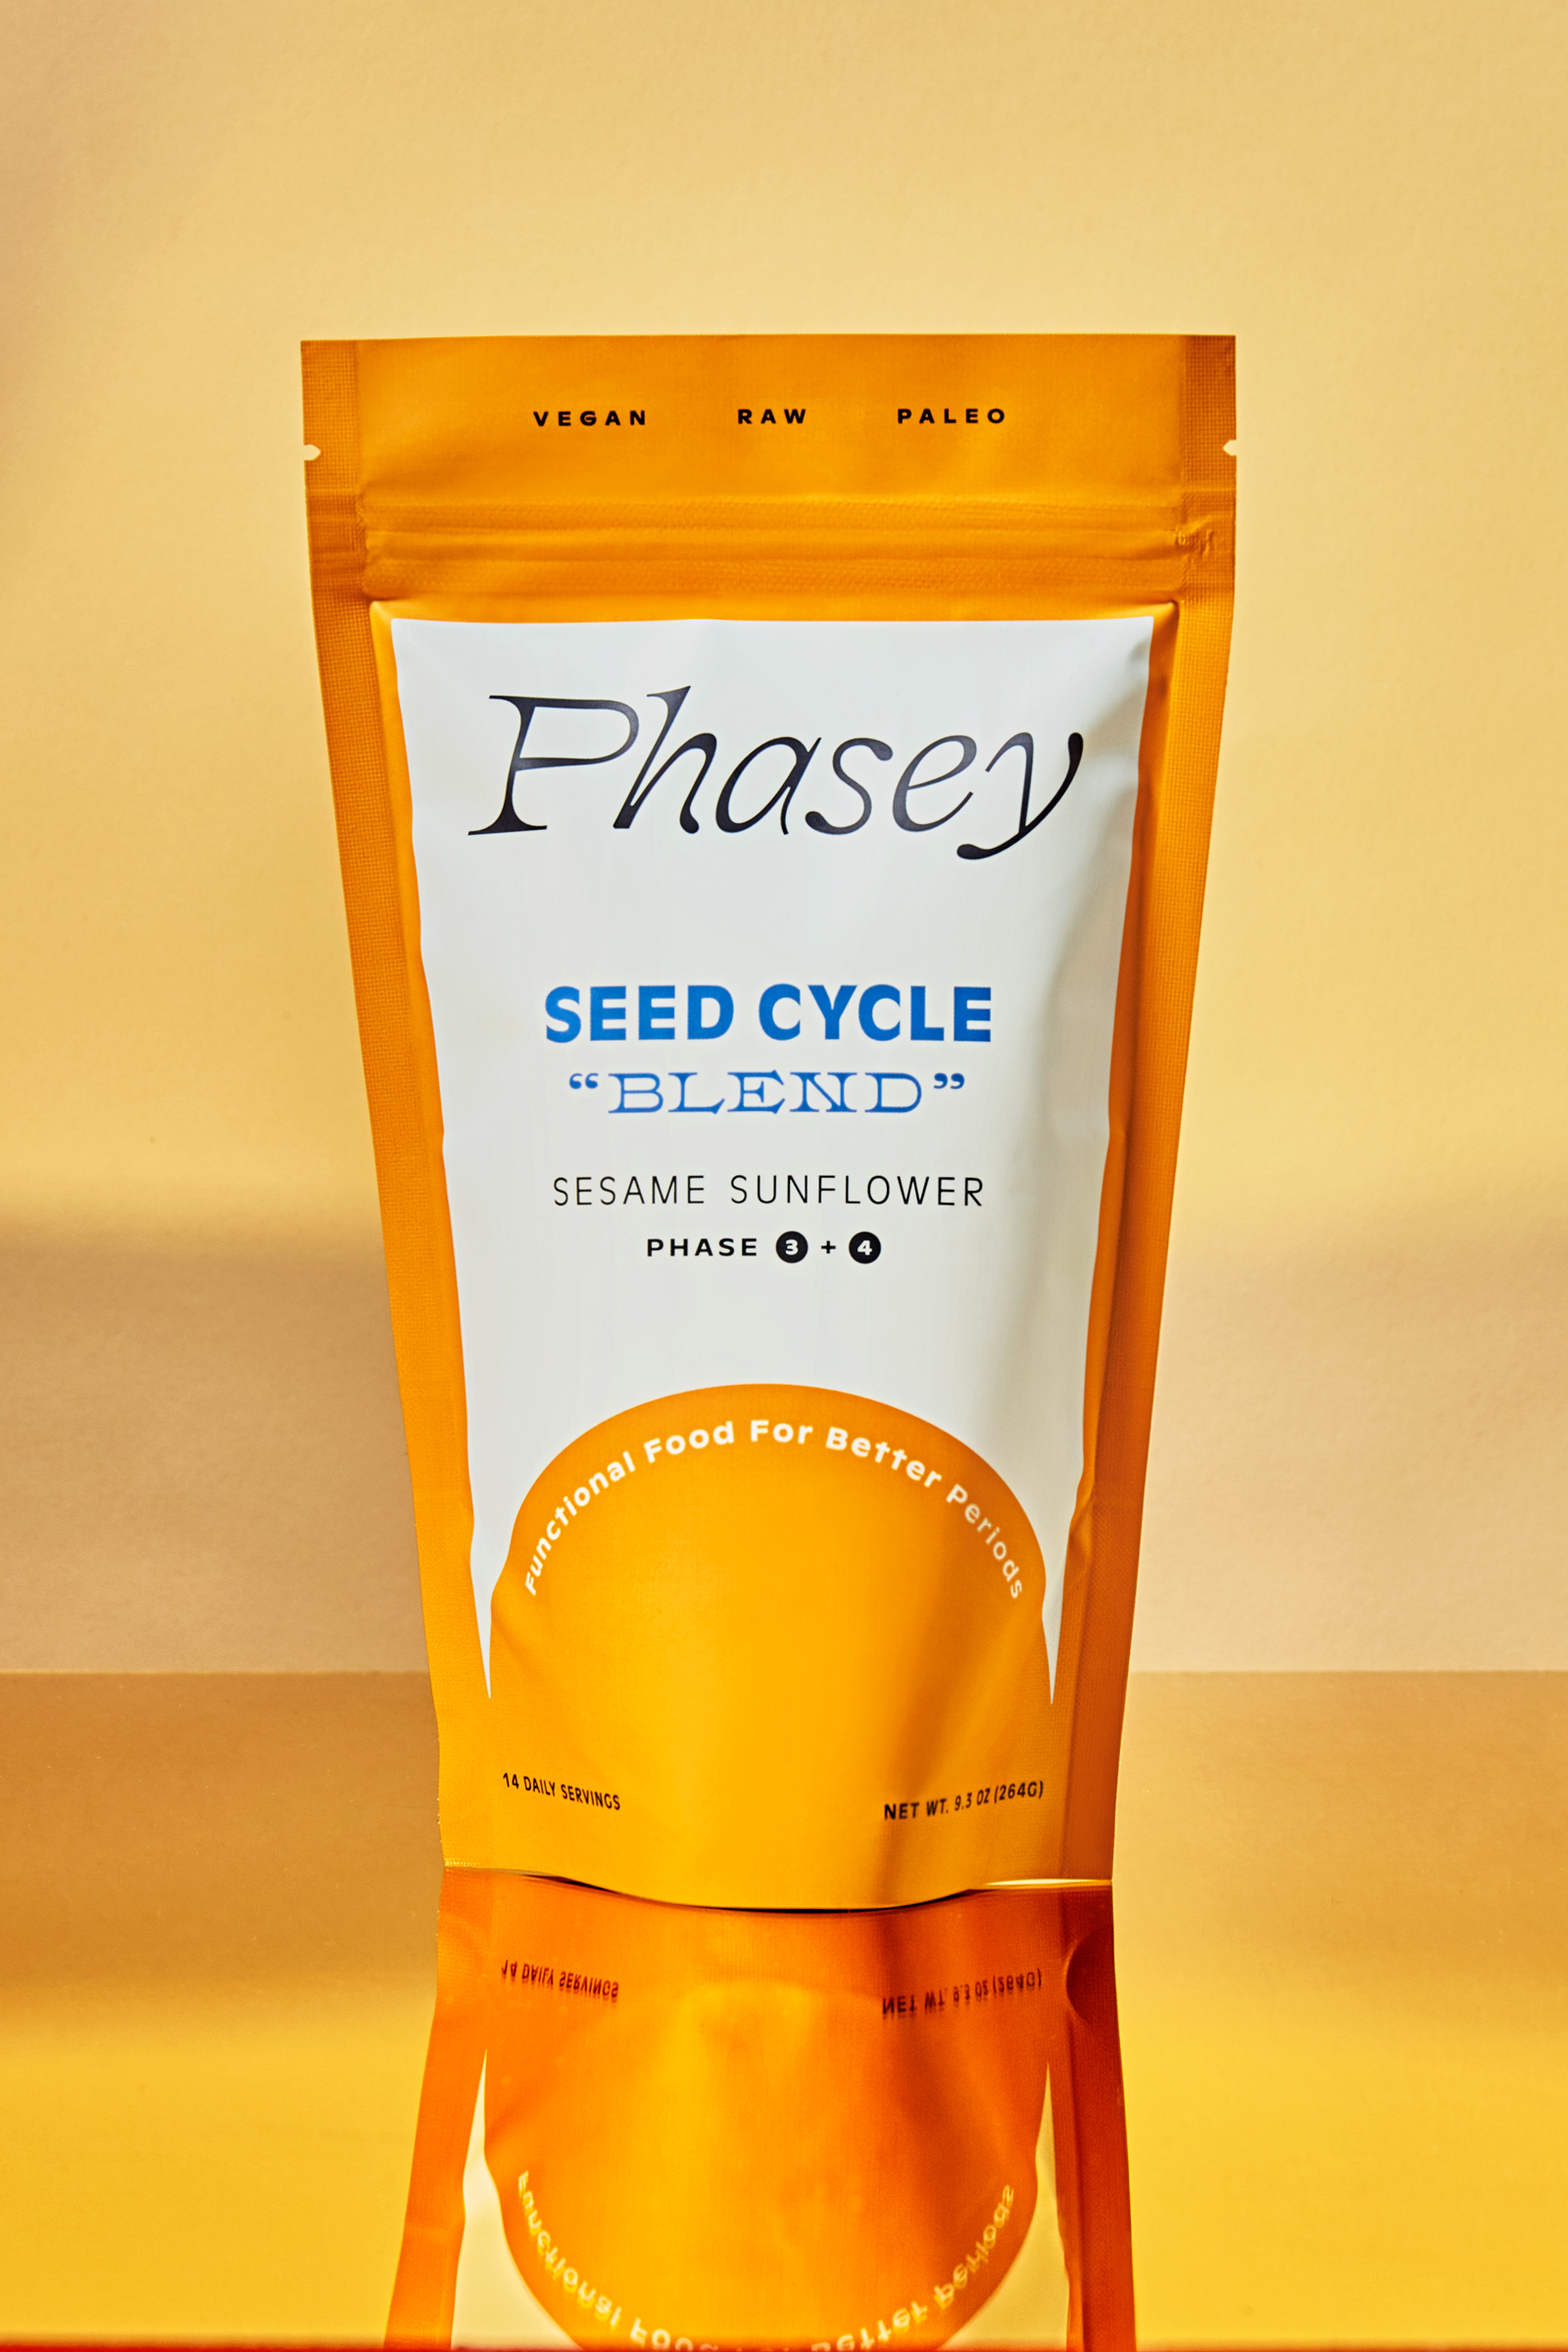 Sesame Sunflower Seed Cycle Blend